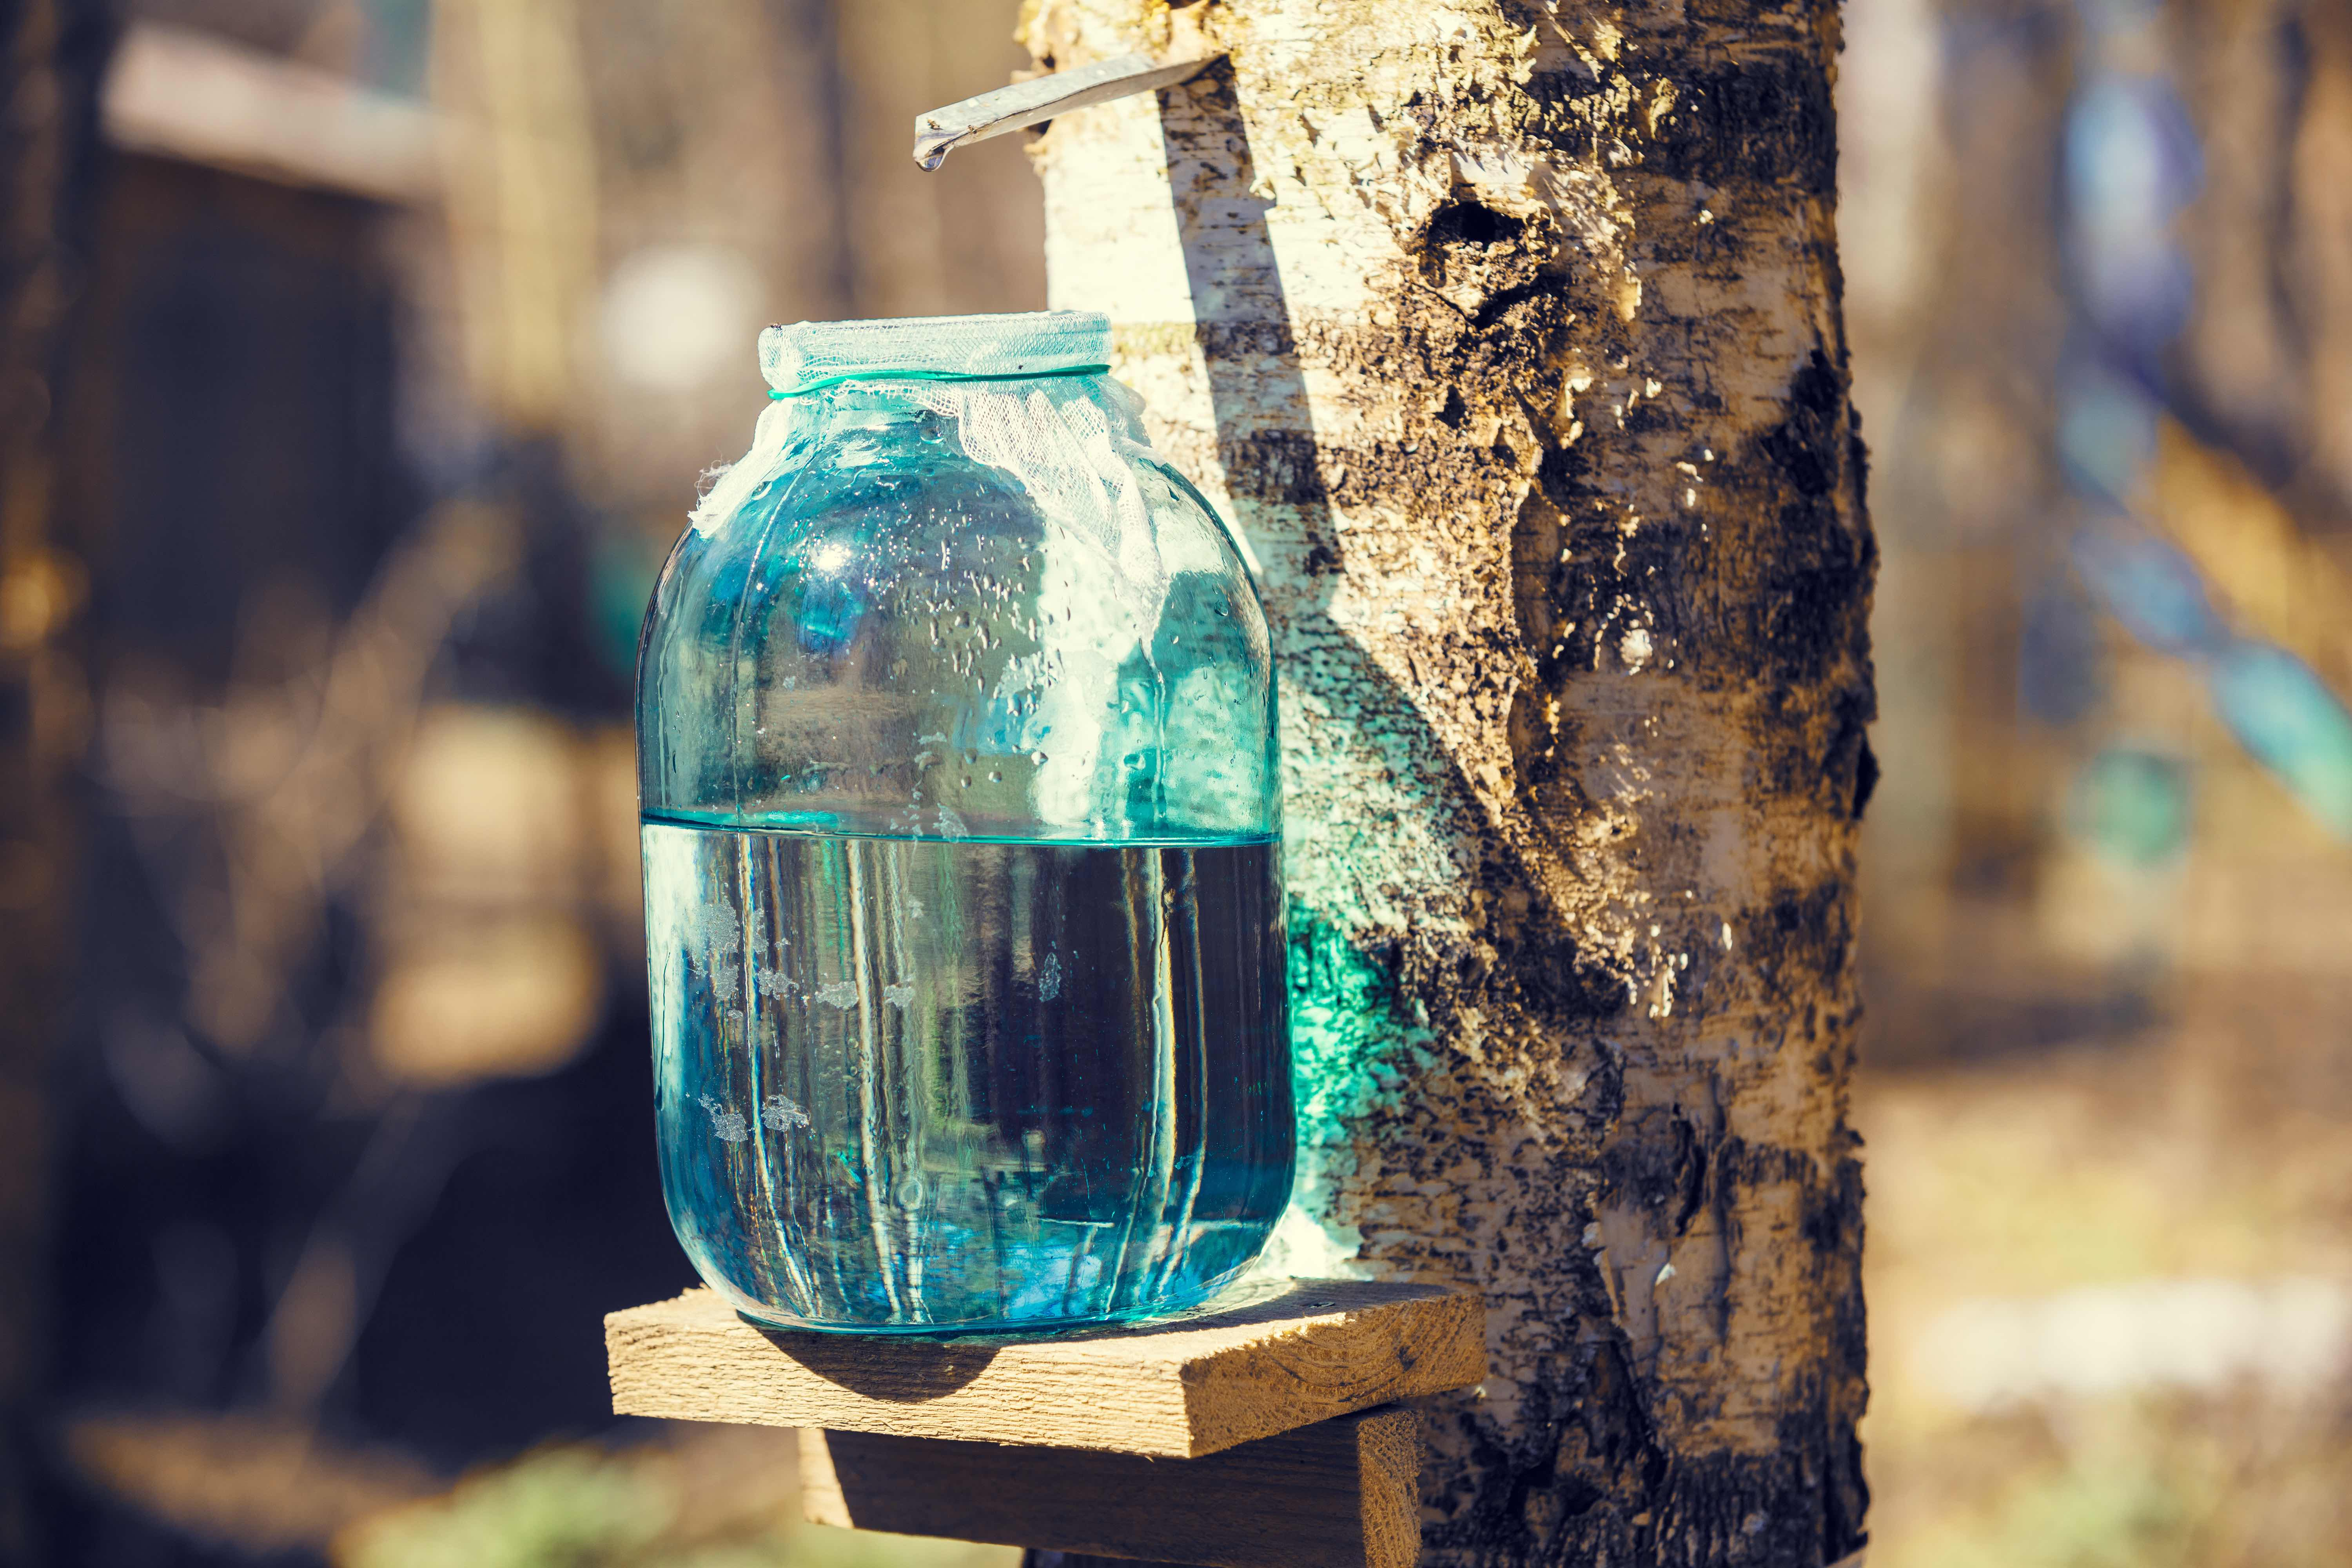 Production of birch sap in a glass jar in the forest.